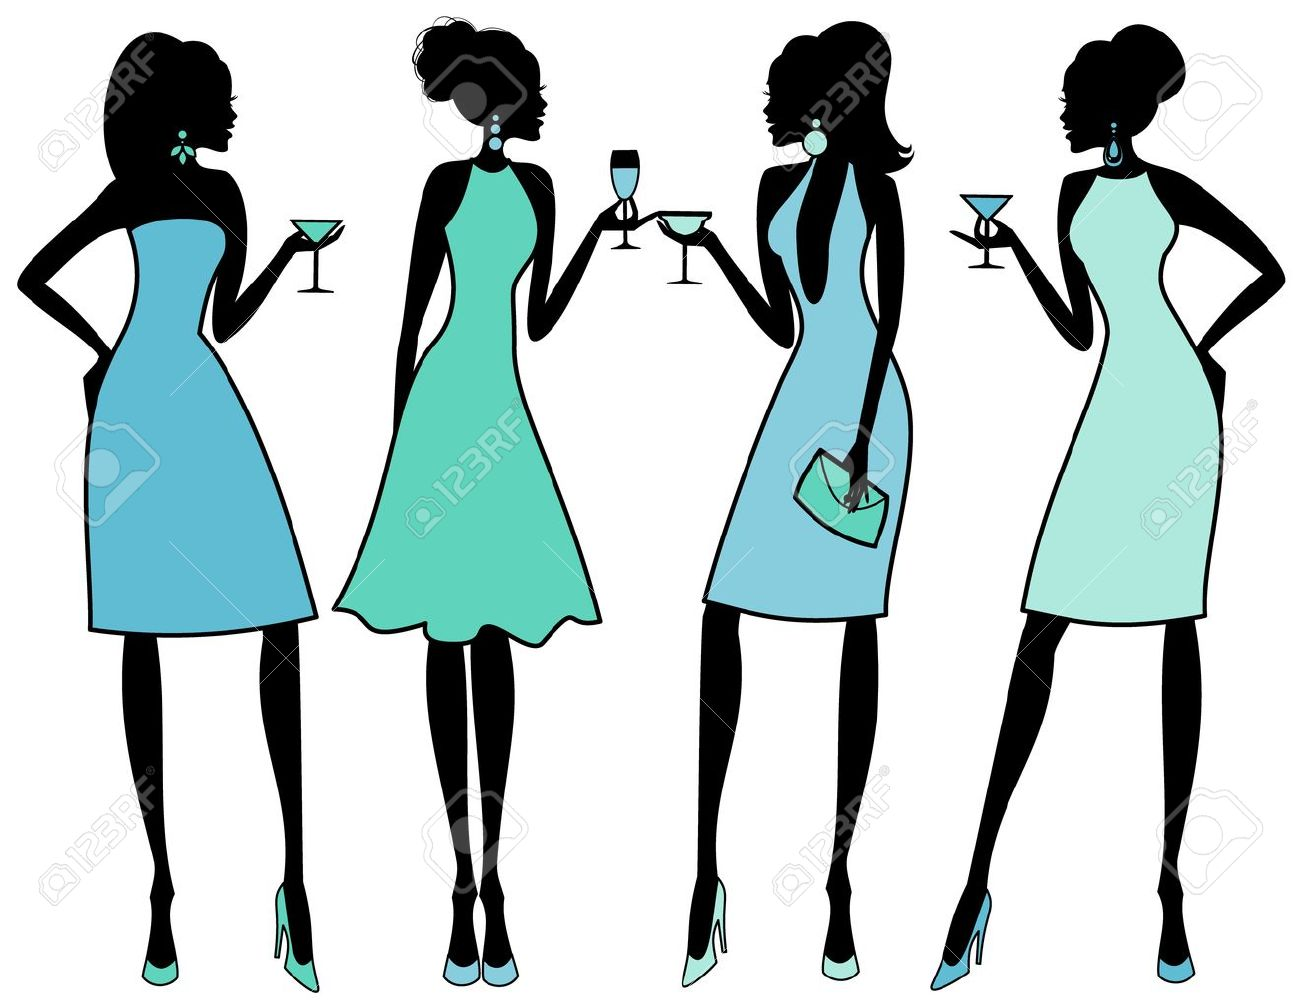 Vector illustration of four young women at an elegant cocktail party - 12394154